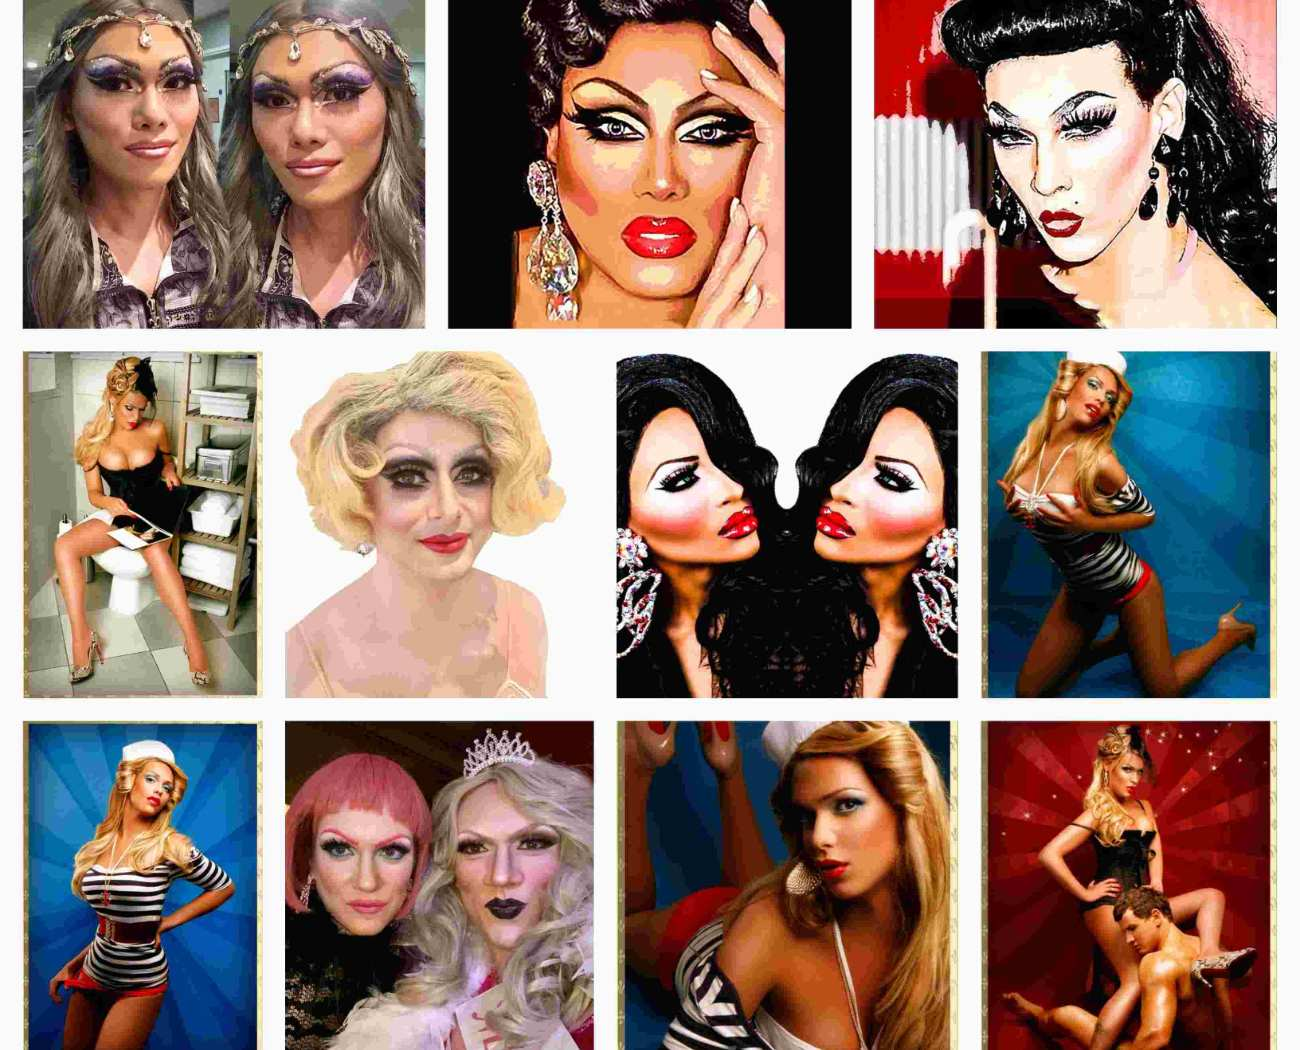 Drag photo shoot at ftphotography with makeup, hair & styling